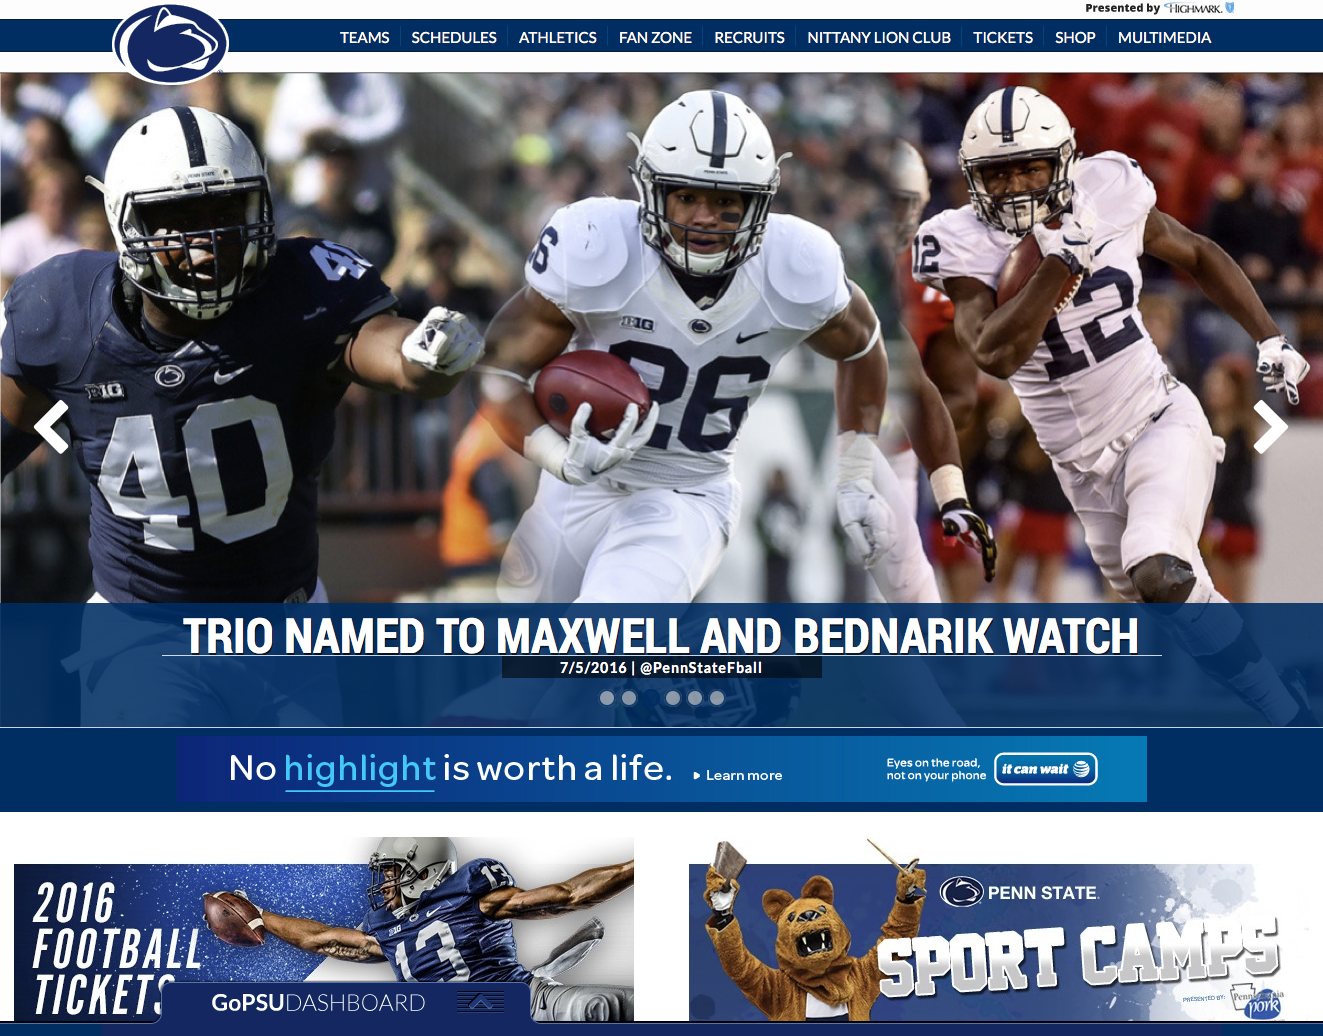 GOPSUSPORTS.com_Official_Athletic_Site_of_Penn_State_-_2016-07-05_15.47.49.png